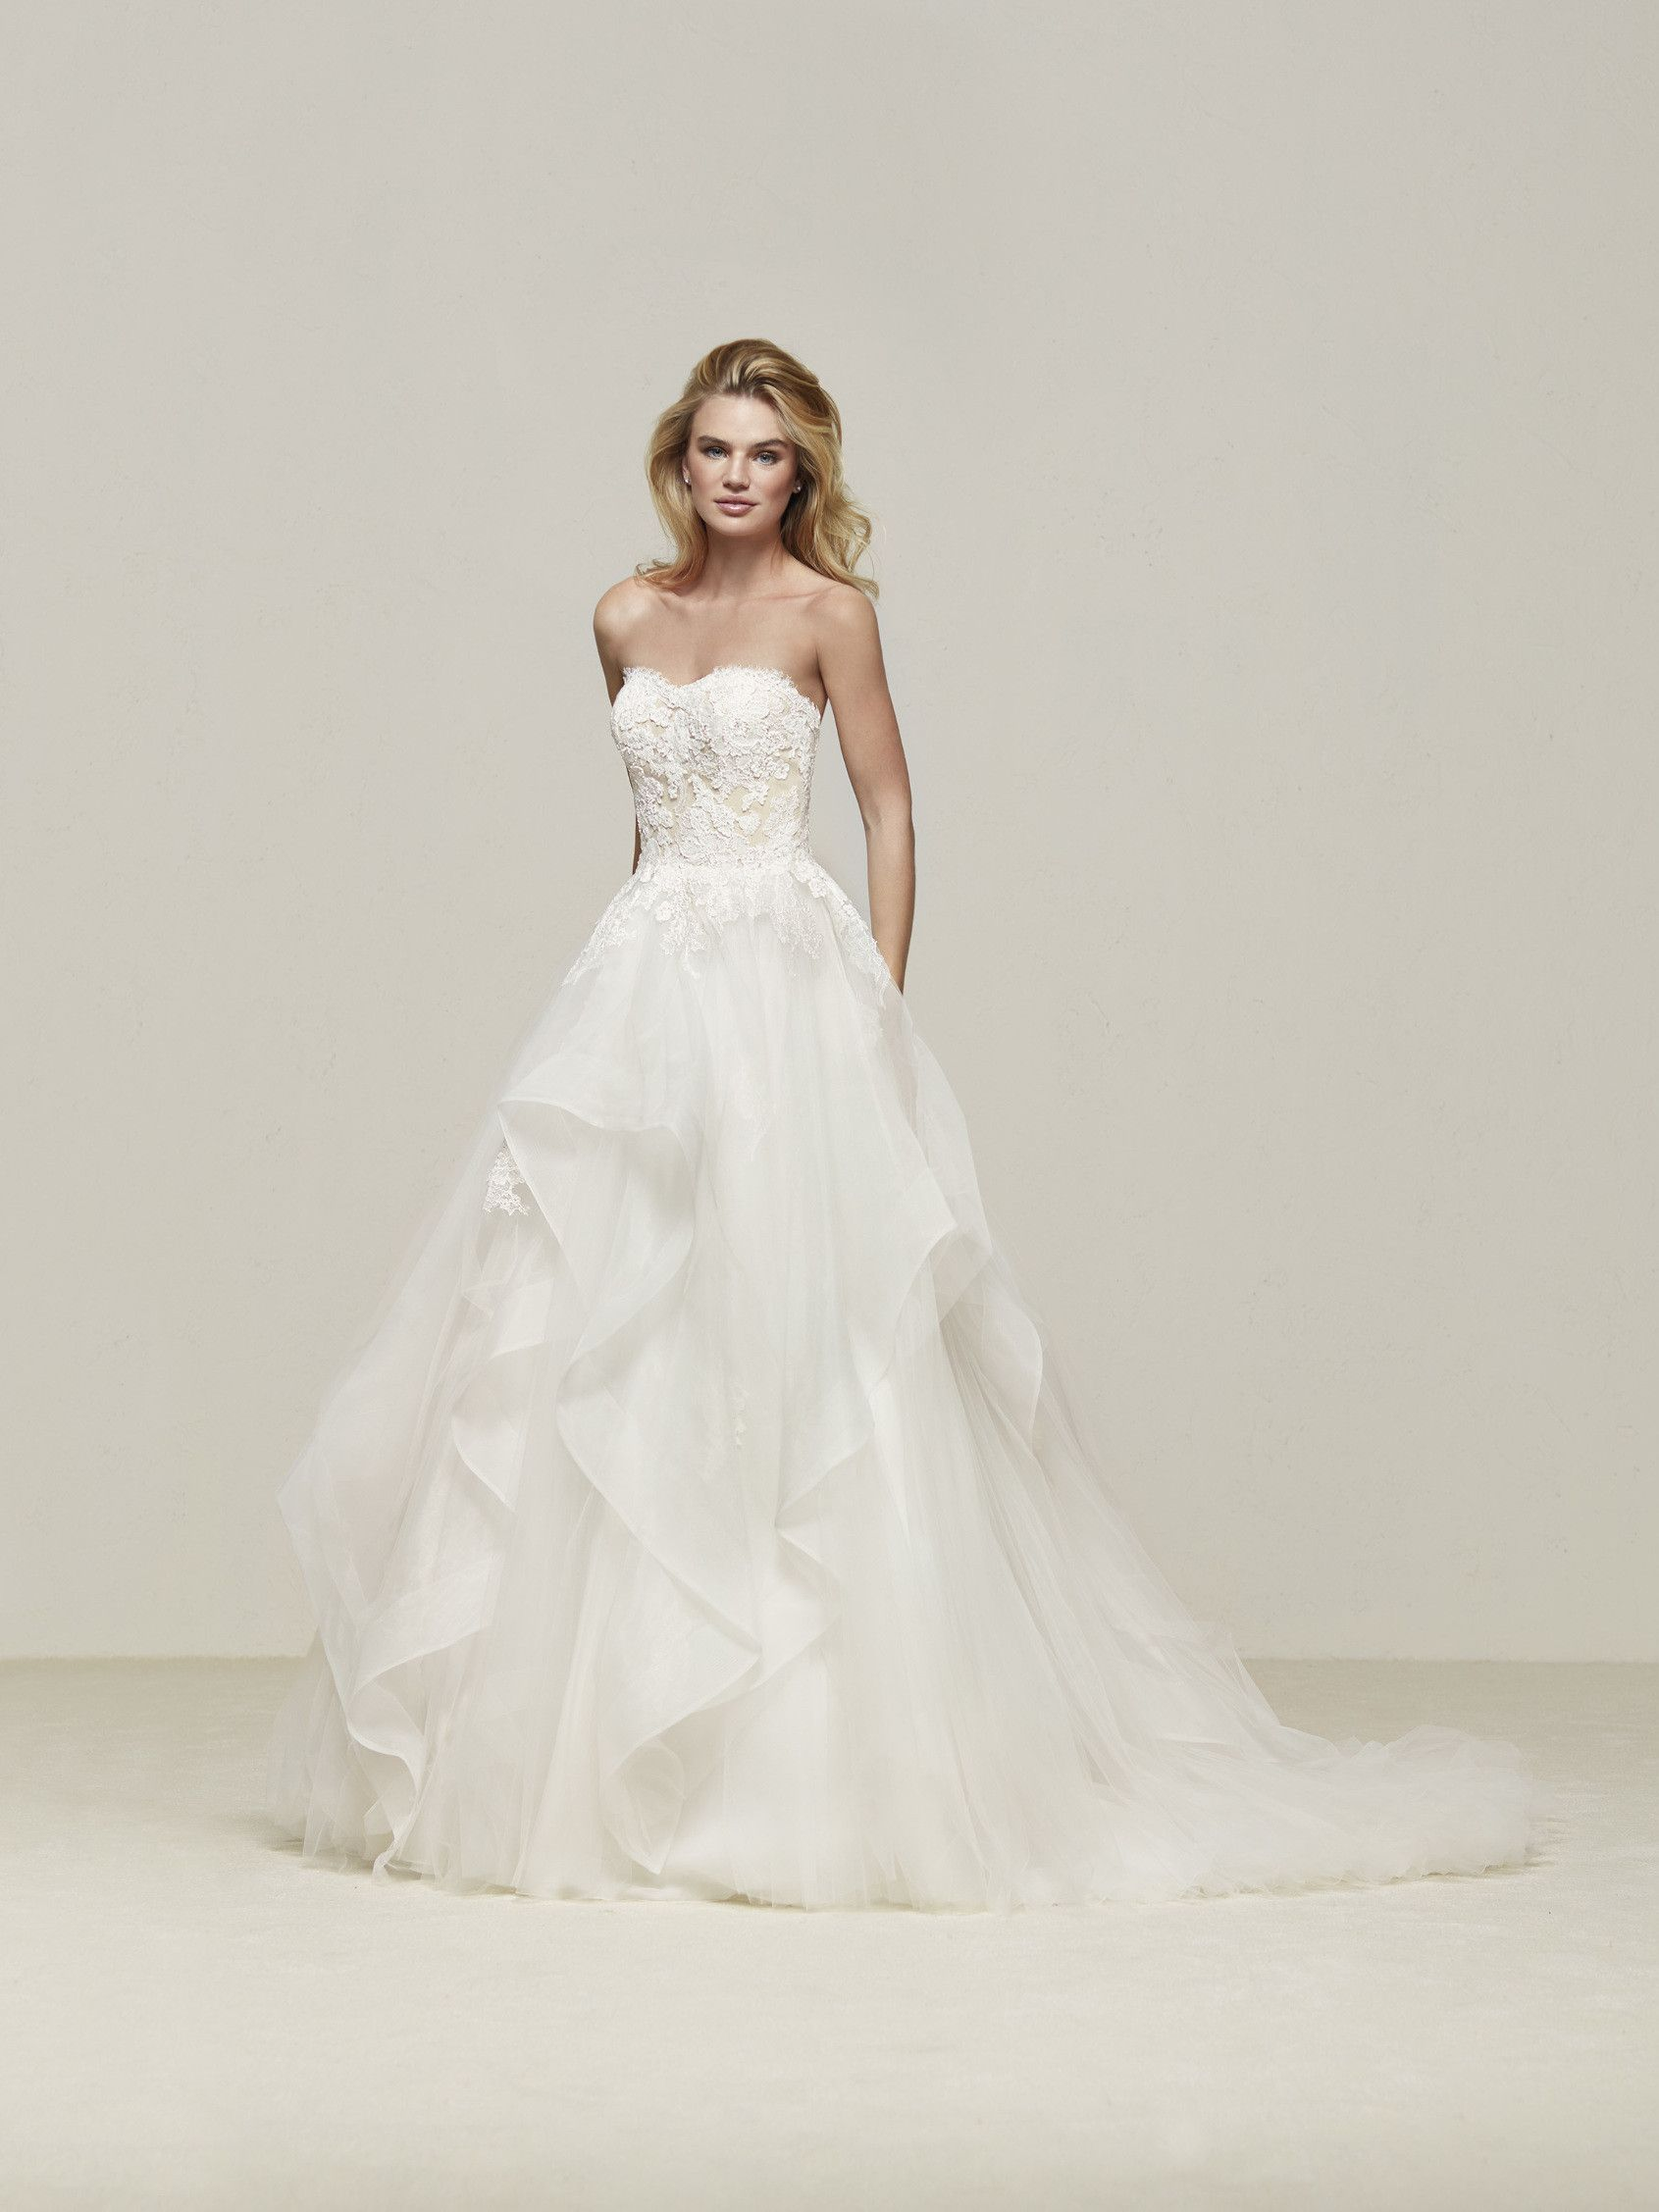 Lovely Great wedding dress with skirt with cascading frills Draval Pronovias Pronovias